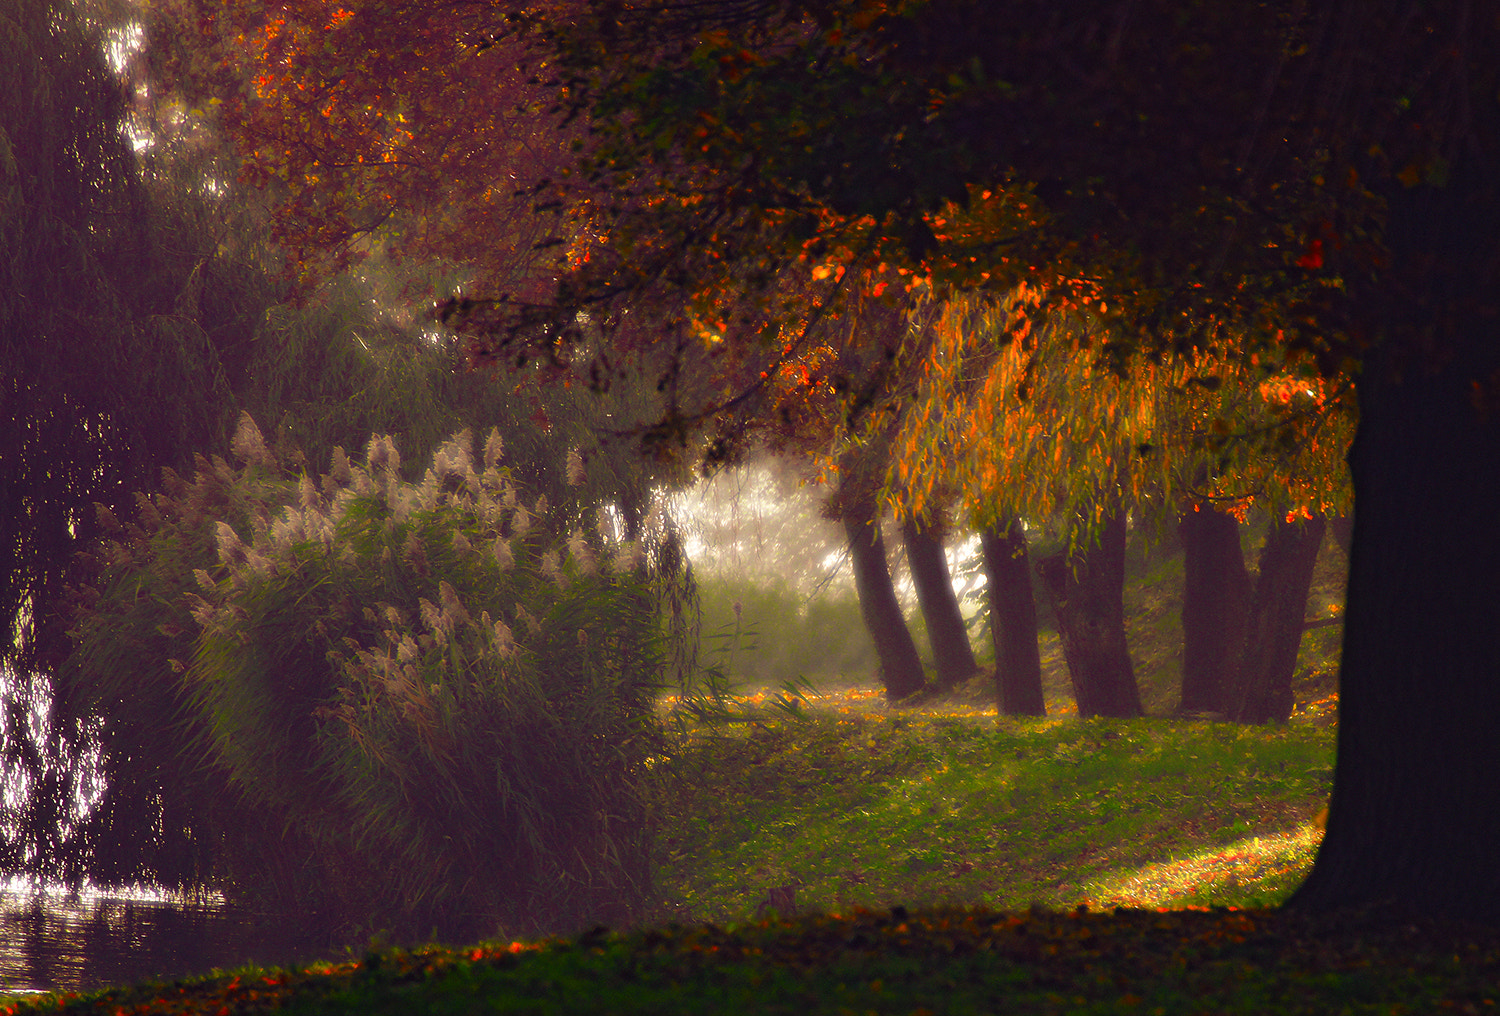 Photograph foliage on during by Andy 58 on 500px